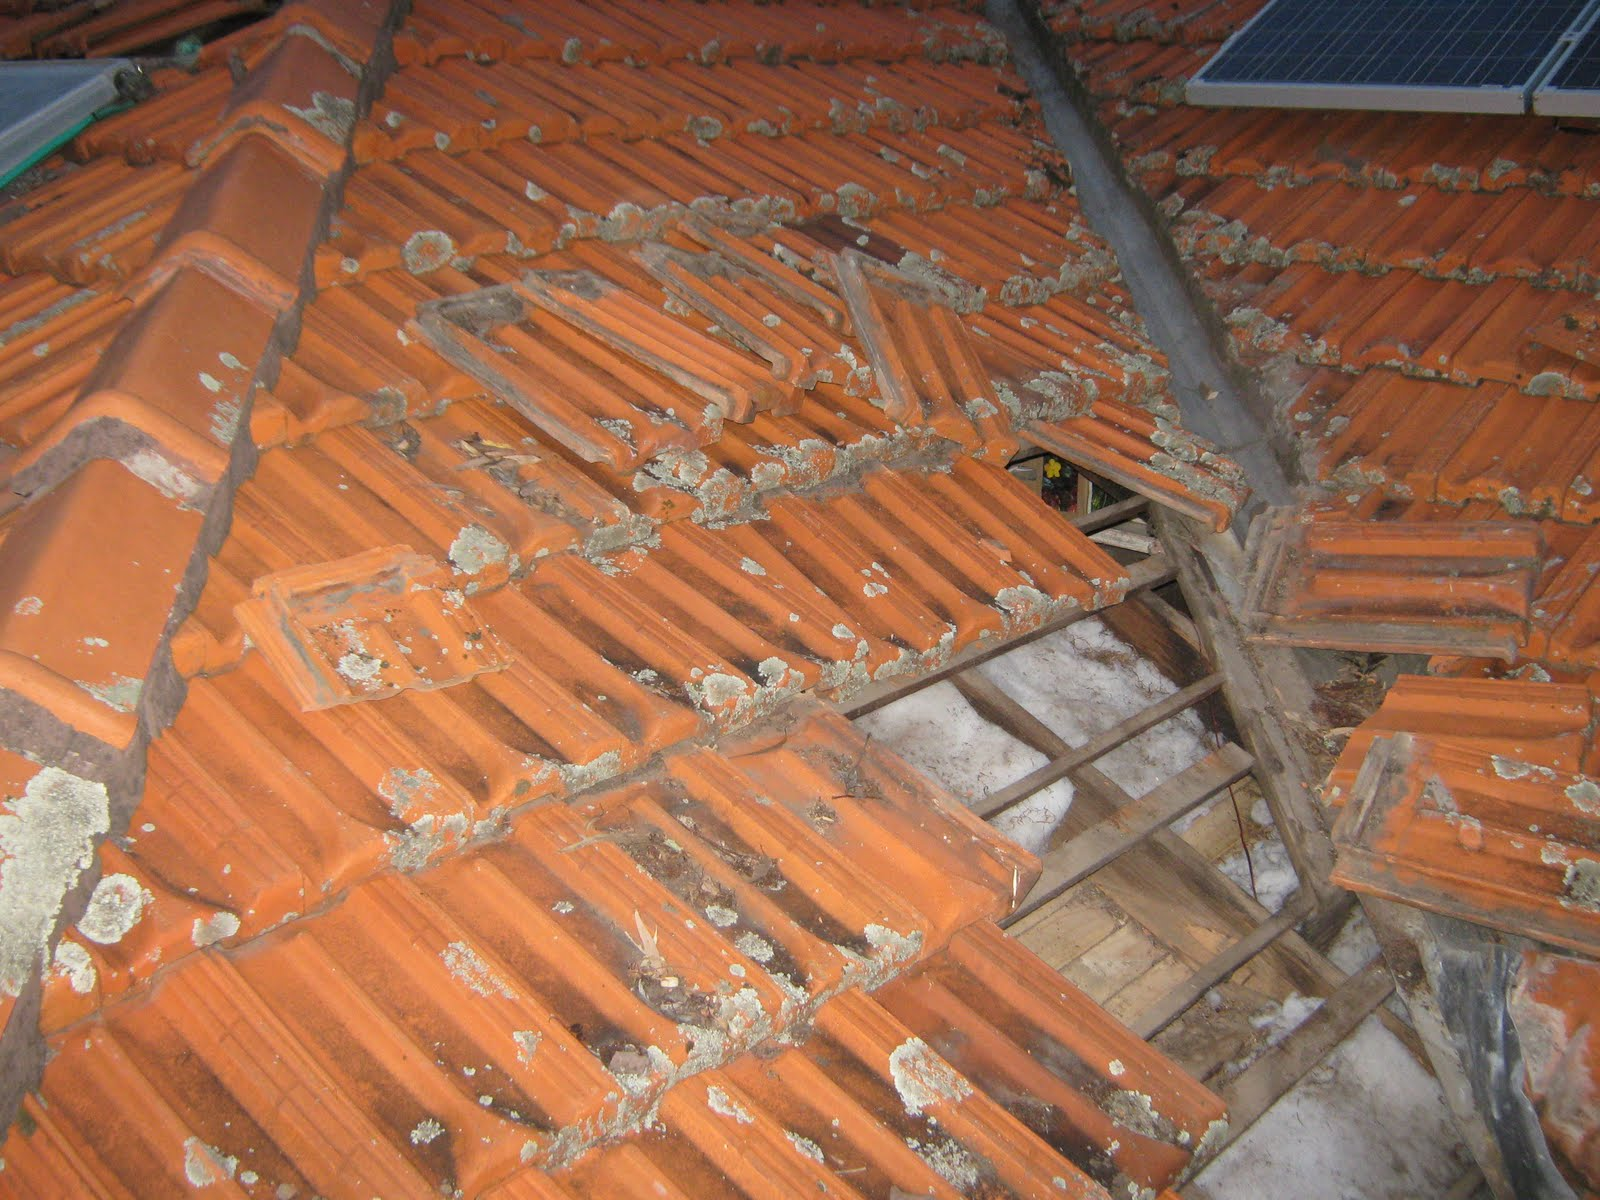 here is a triptych of three photos showing that section of the roof from left to right try to view them side by side